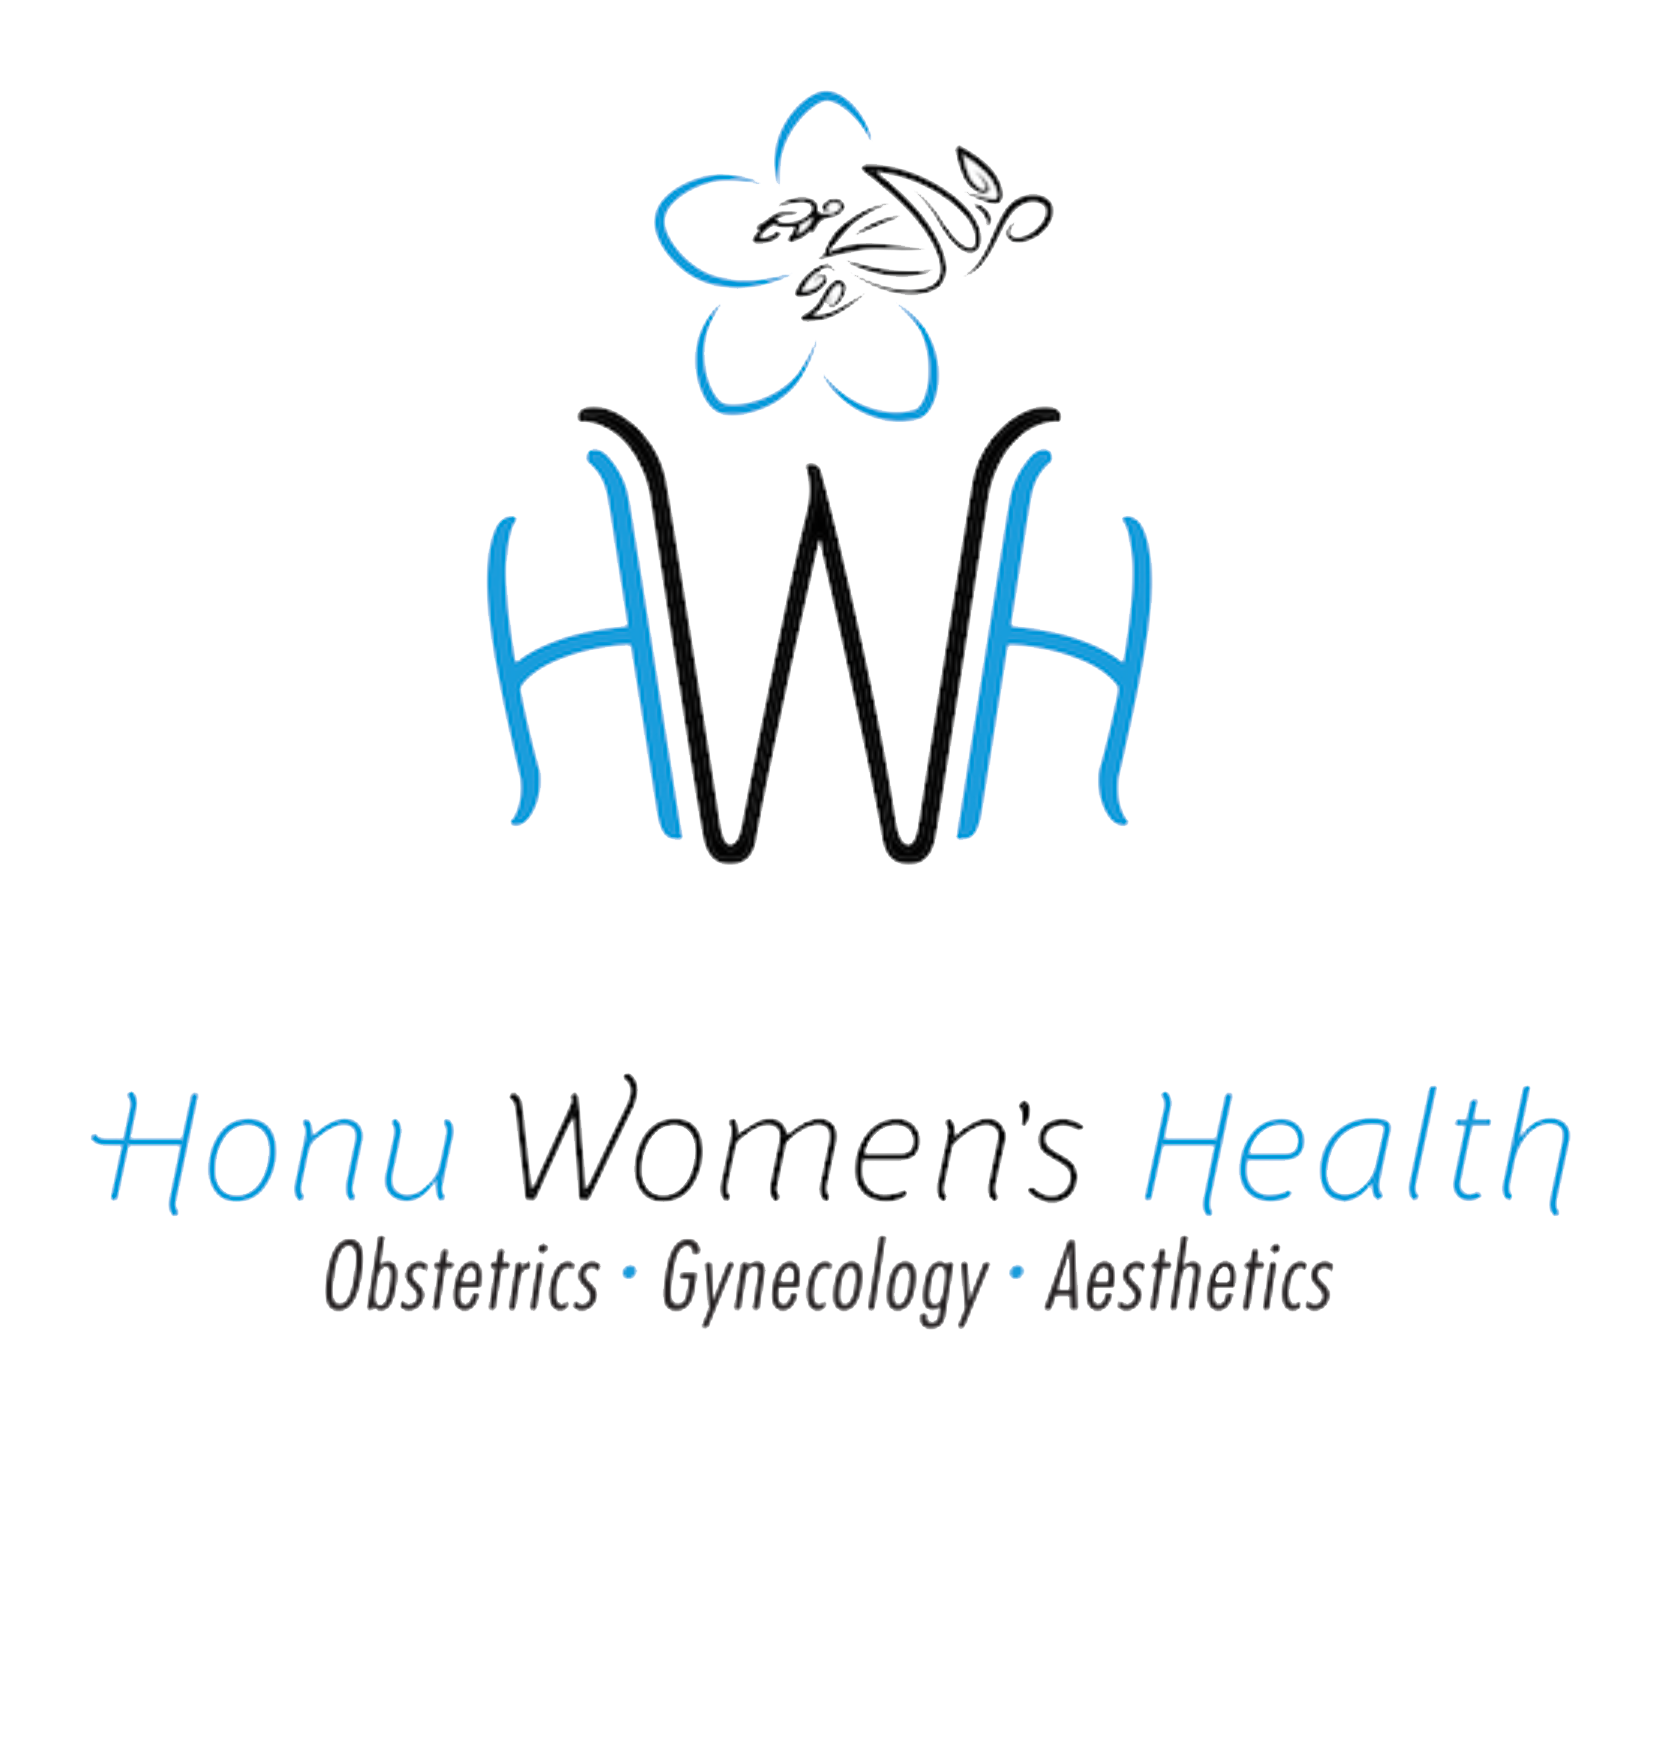 Honu Women's Health